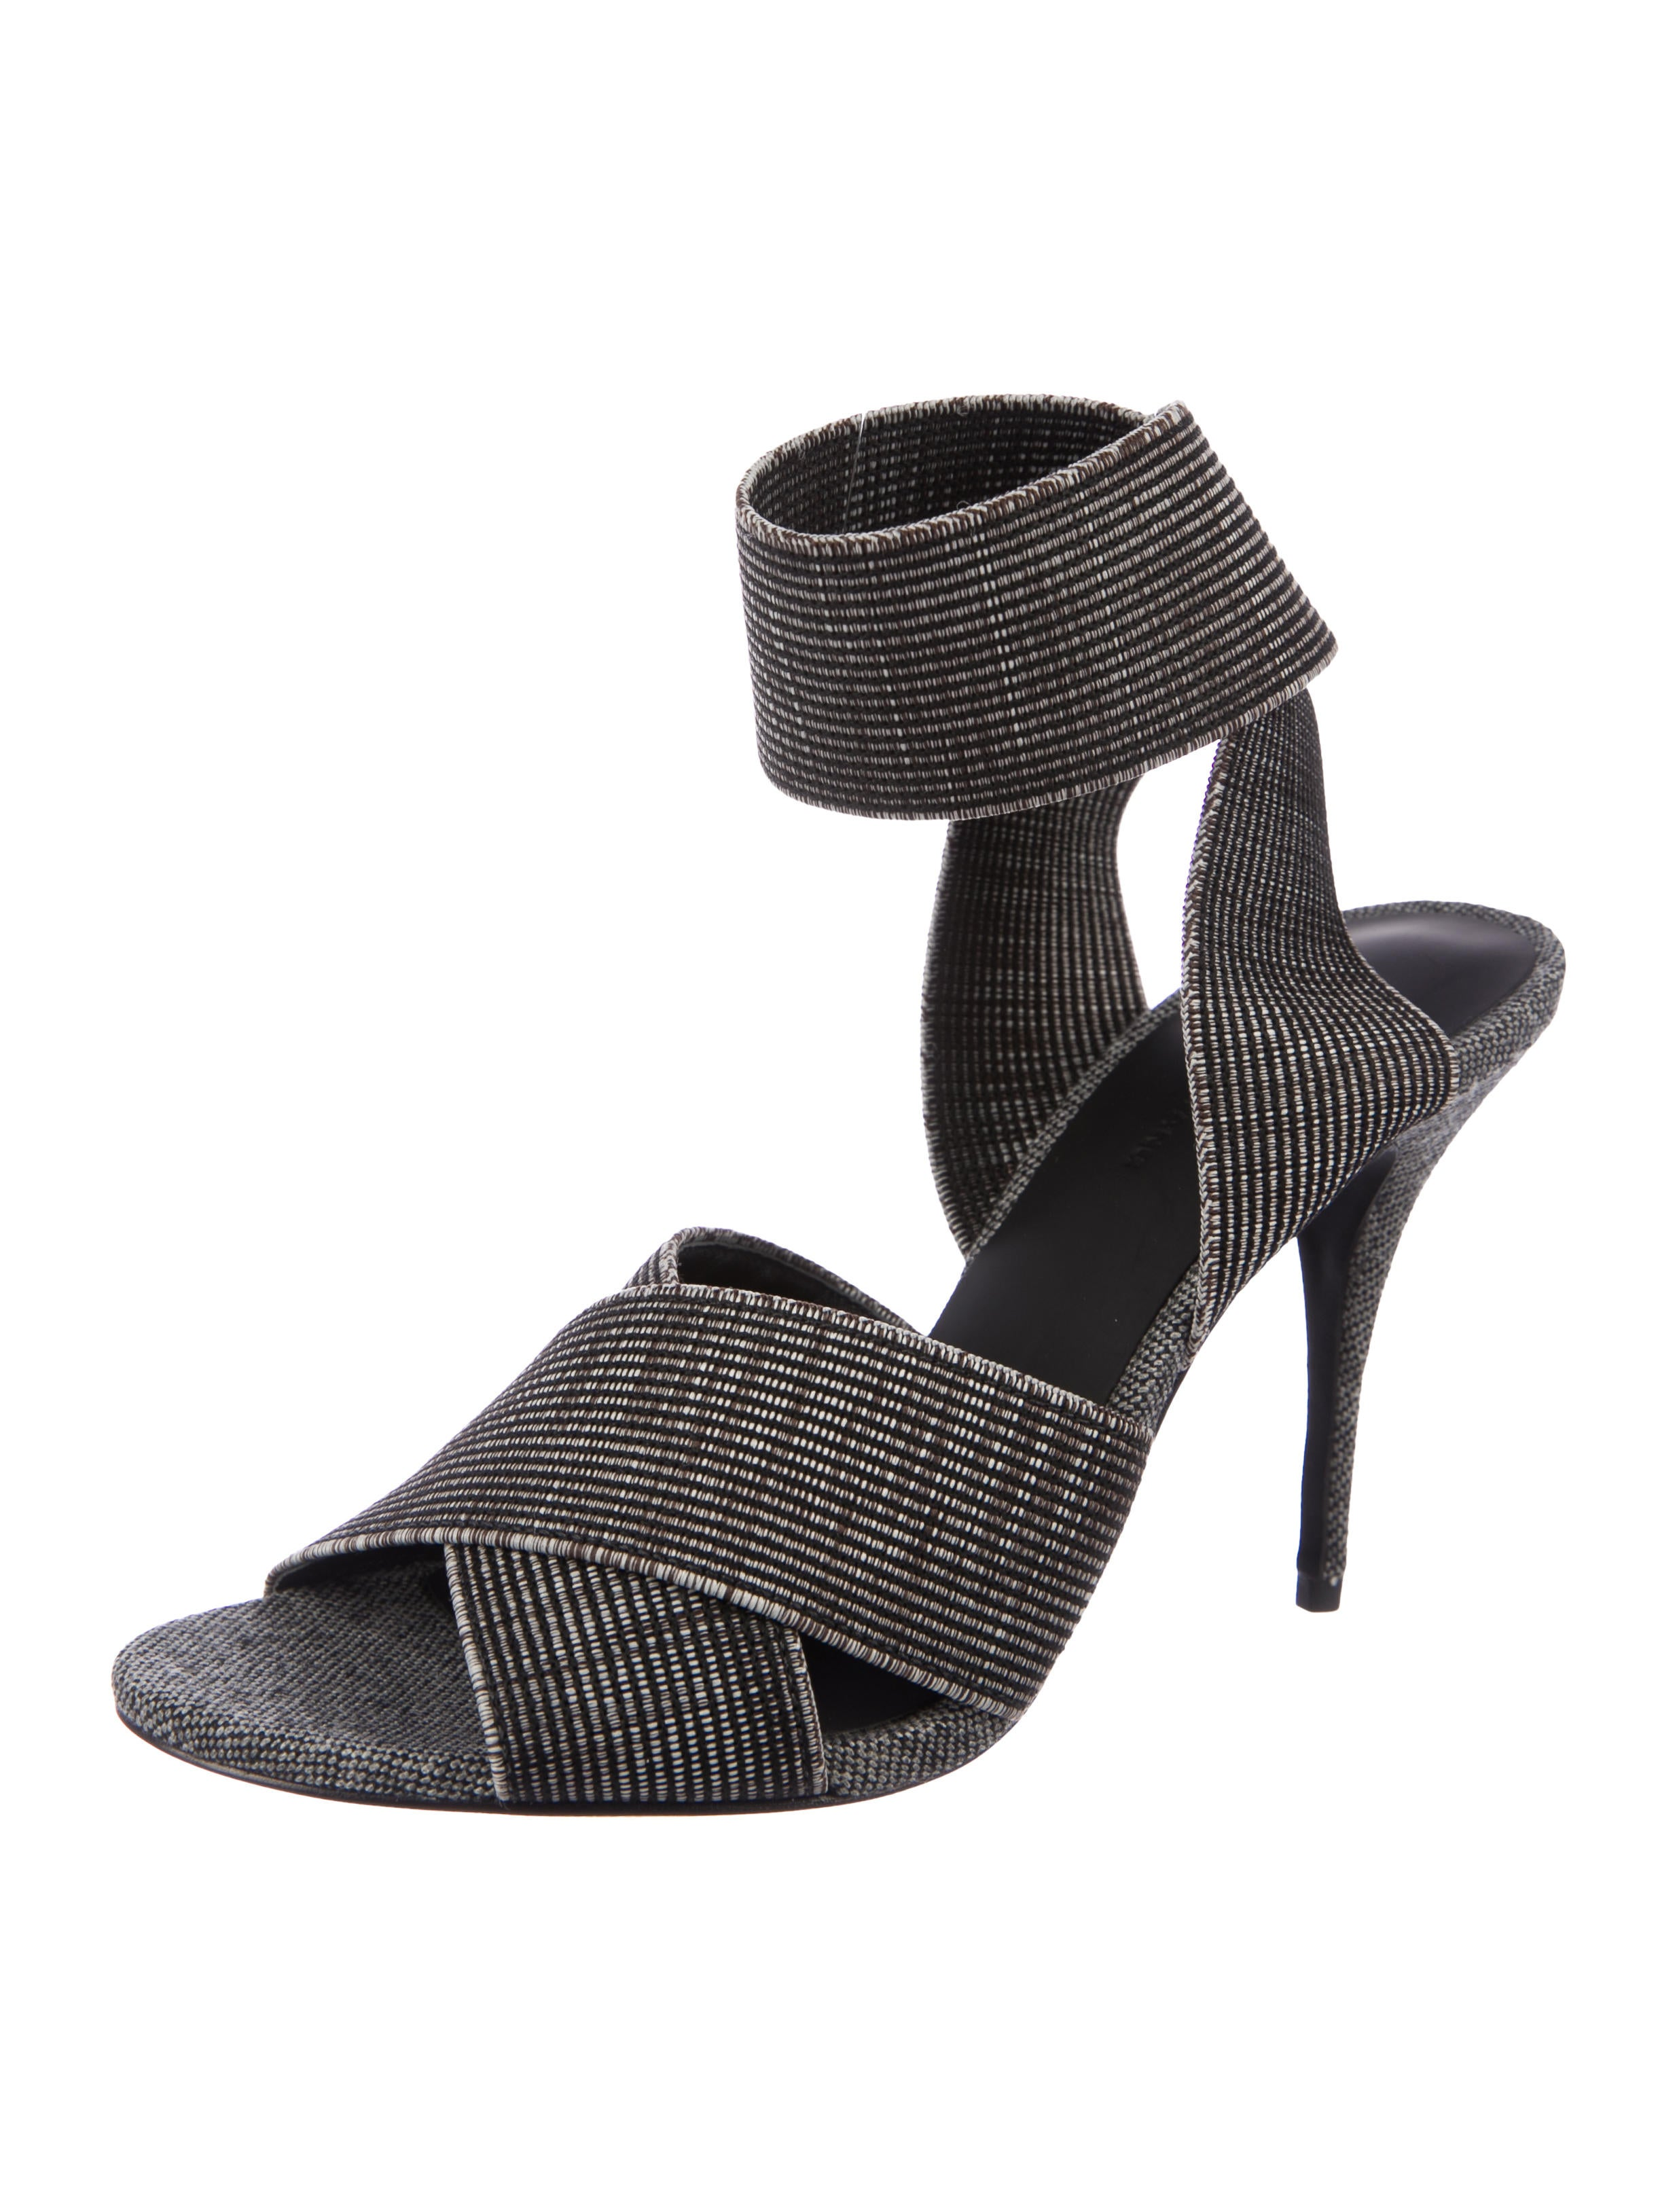 Alexander Wang Dana Crossover Sandals w/ Tags clearance new cheap sale footaction sale sneakernews outlet with paypal order online browse cheap online l7f2iwO